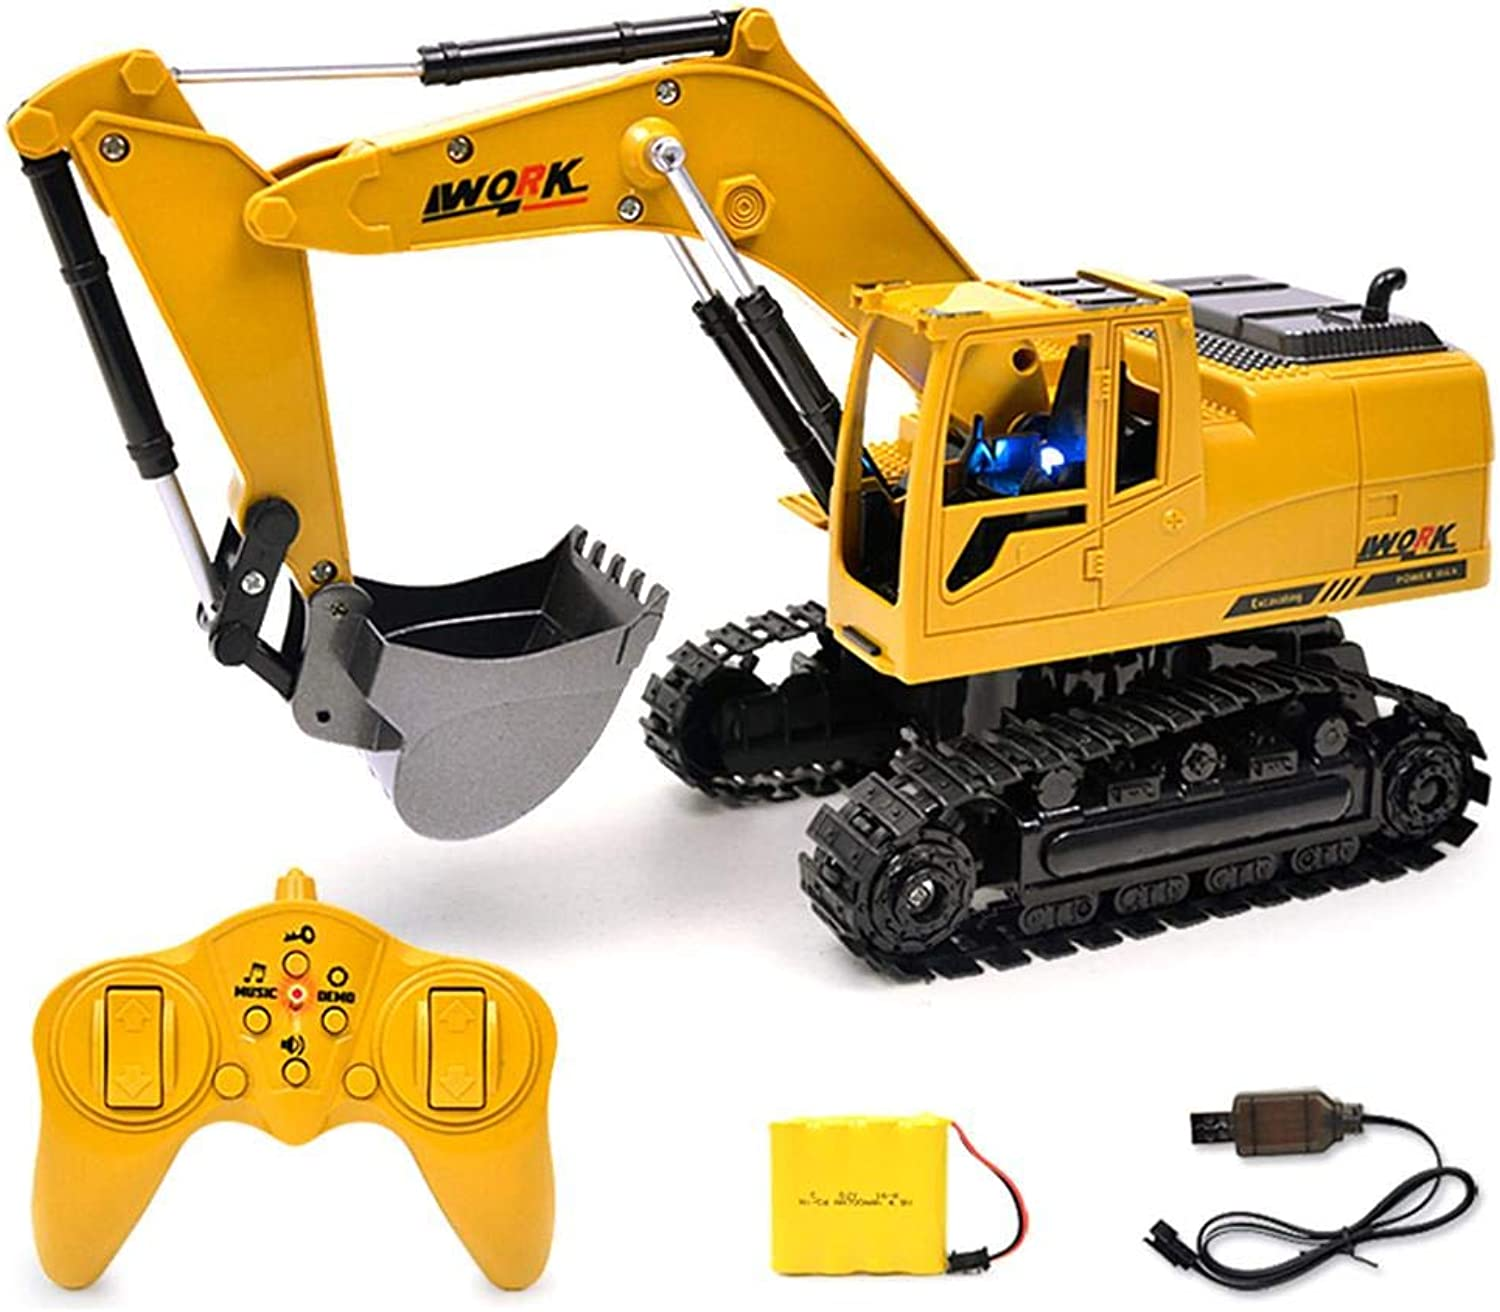 blueeyouth Remote Control Excavator - 5CH RC Construction Excavator Simulation Tractors Engineering Vehicles Excavator Digger with Flash Crawler, Light Electronic Toy Model.